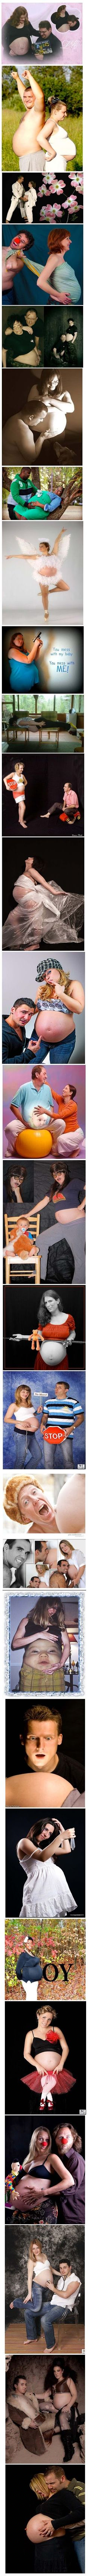 Funny Crazy Pregnancy Photos